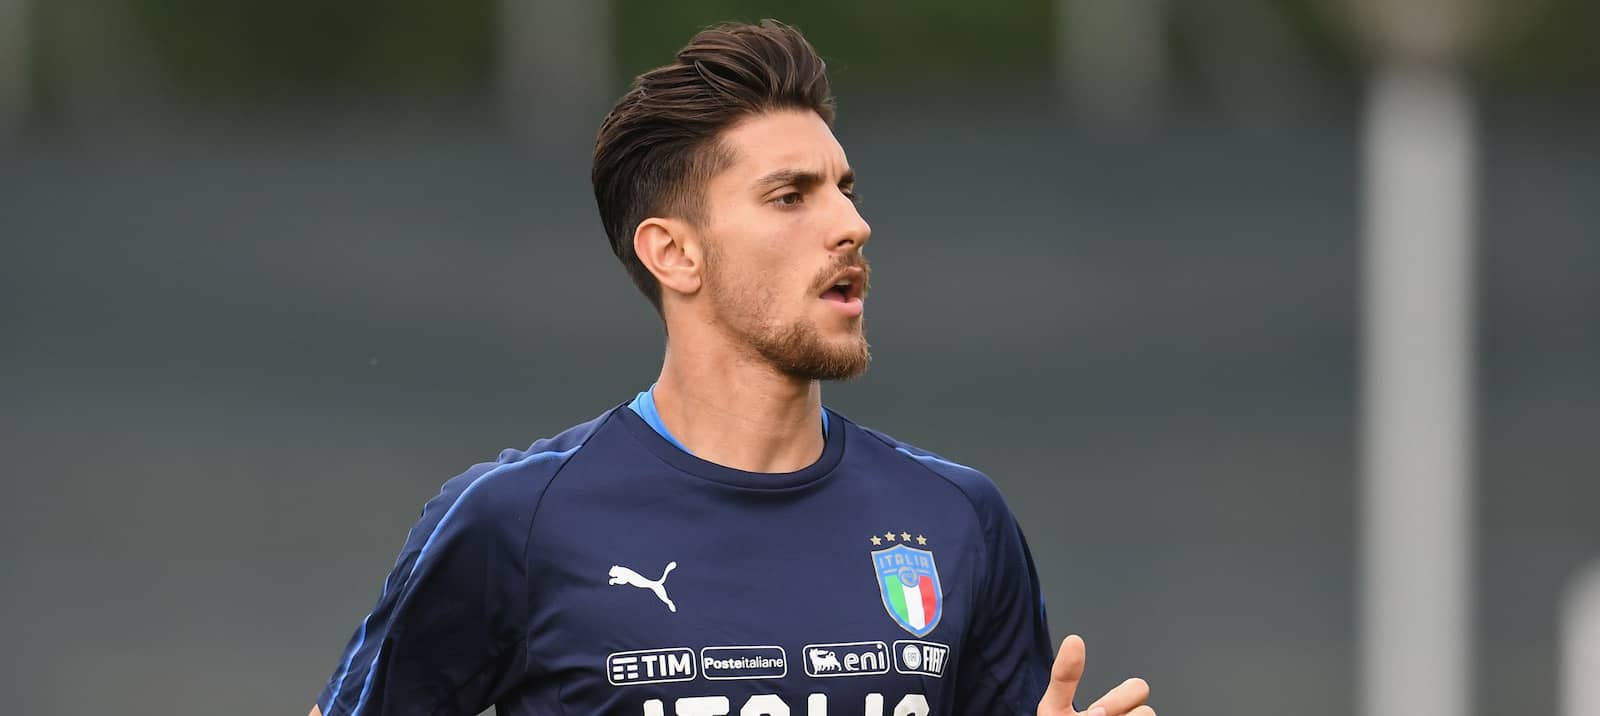 Jose Mourinho considers Lorenzo Pellegrini as Sergej Milinkovic-Savic alternative: report